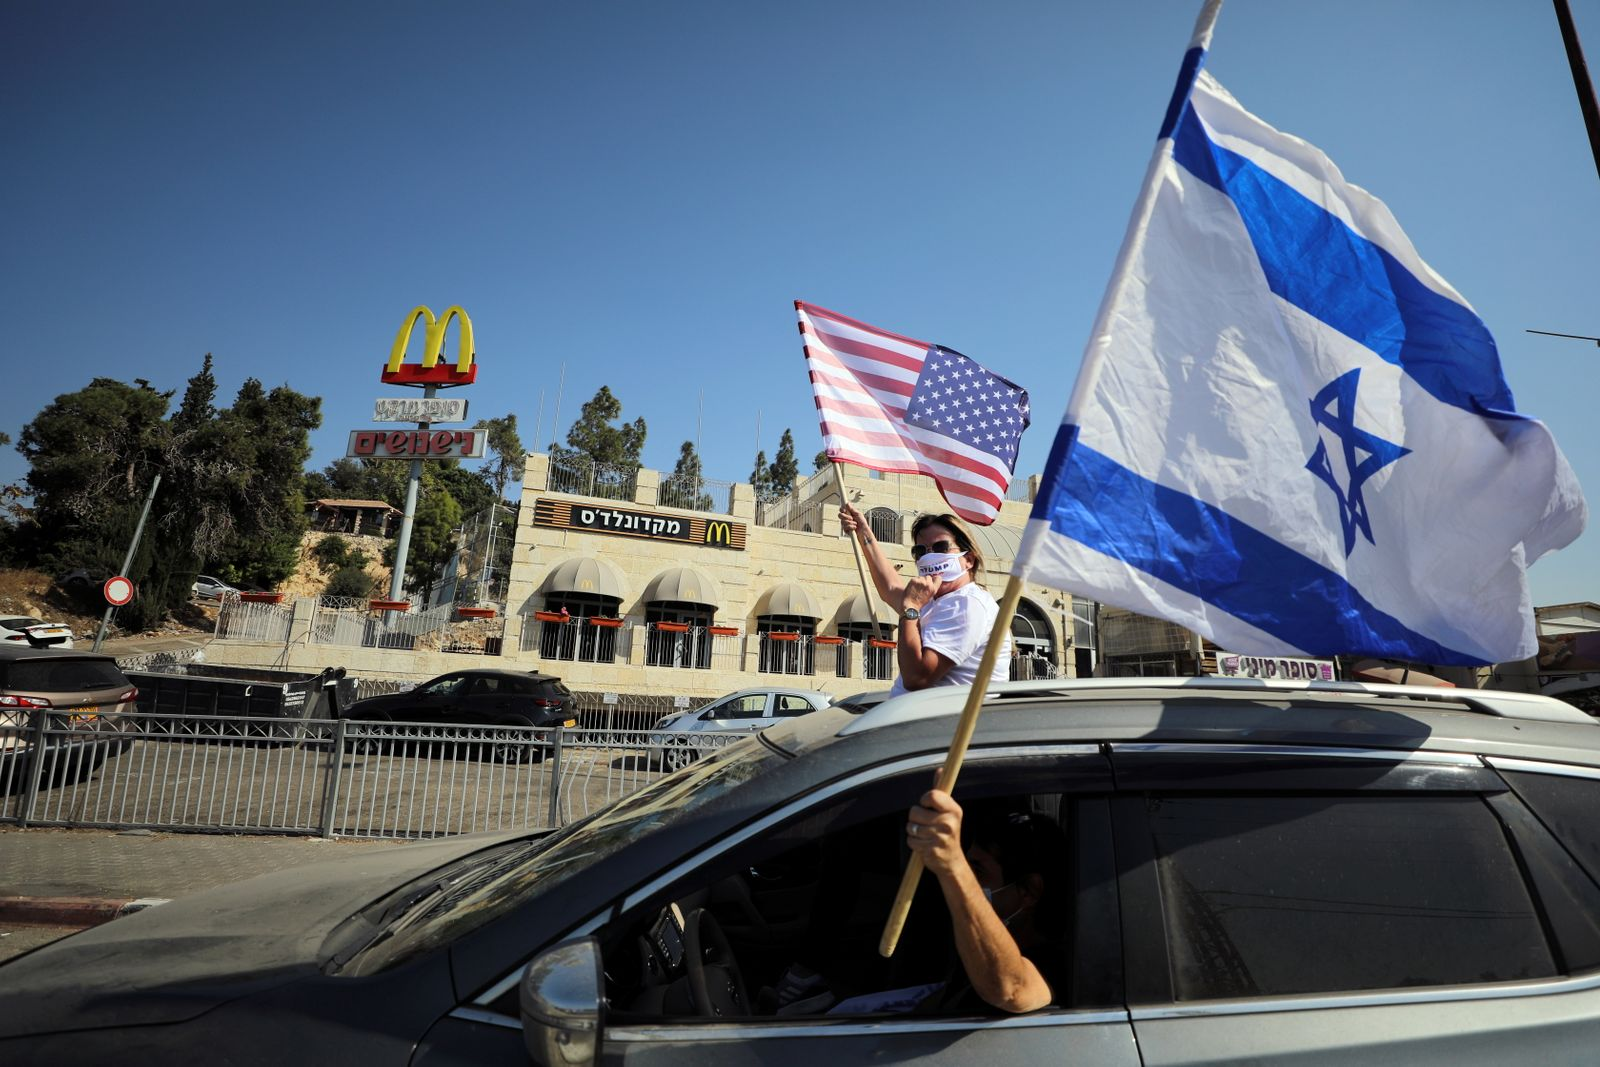 Convoy of Trump supporters drives to U.S. embassy in Jerusalem